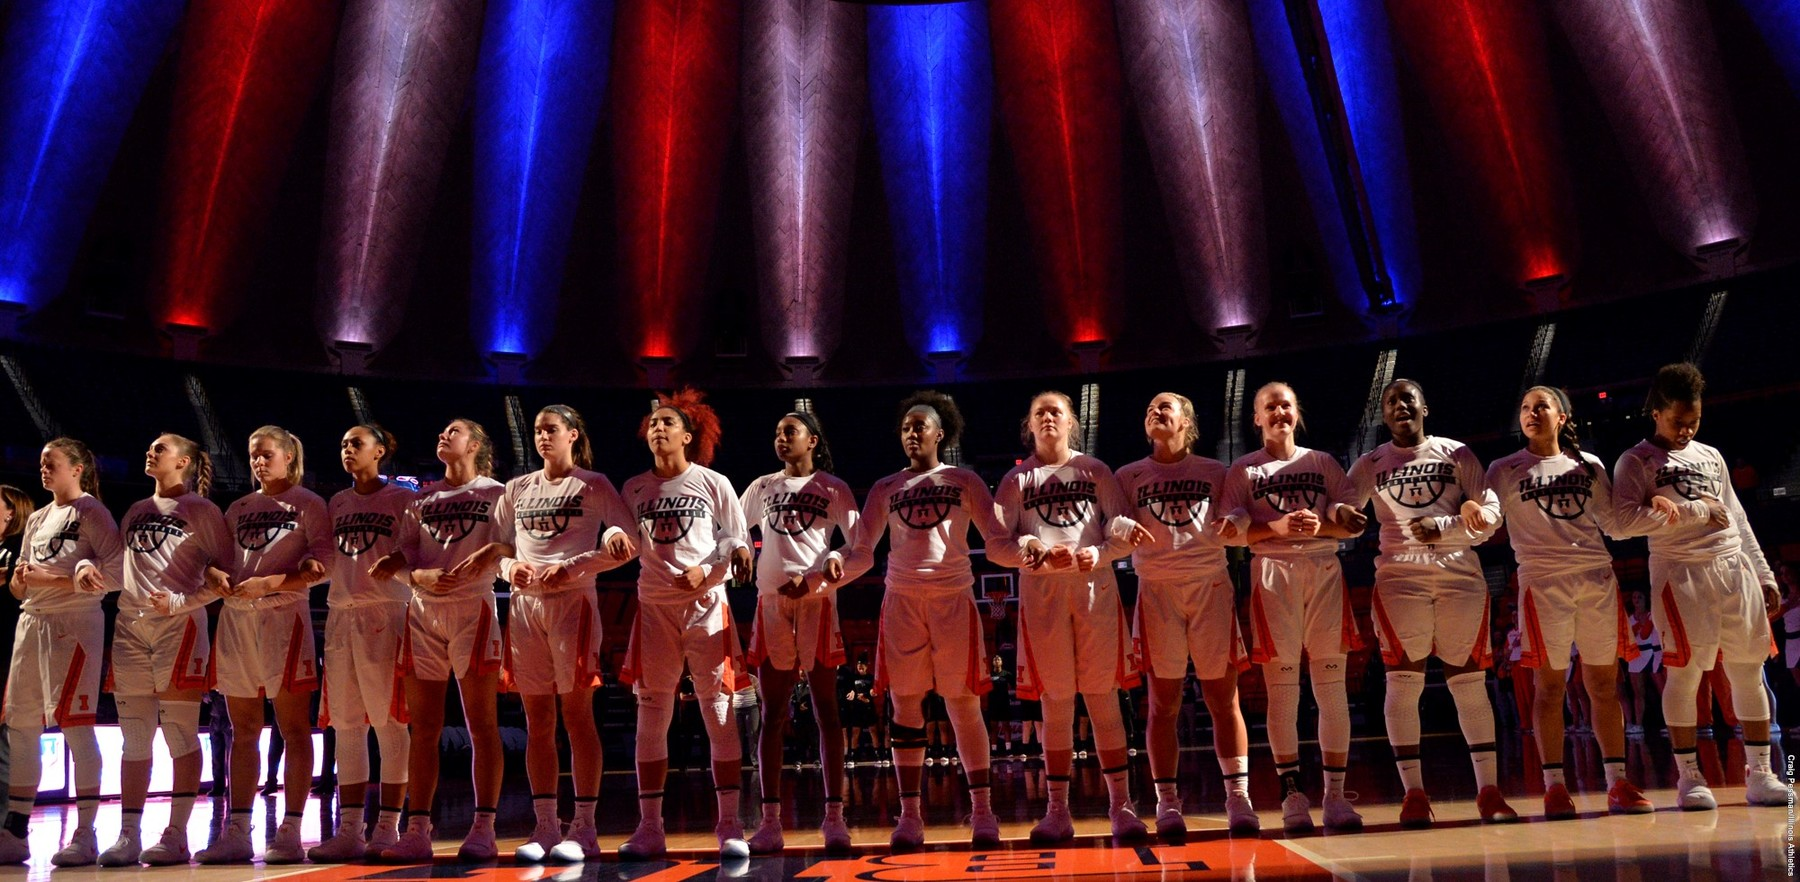 women's basketball team backed by orange and blue lights at state farm center